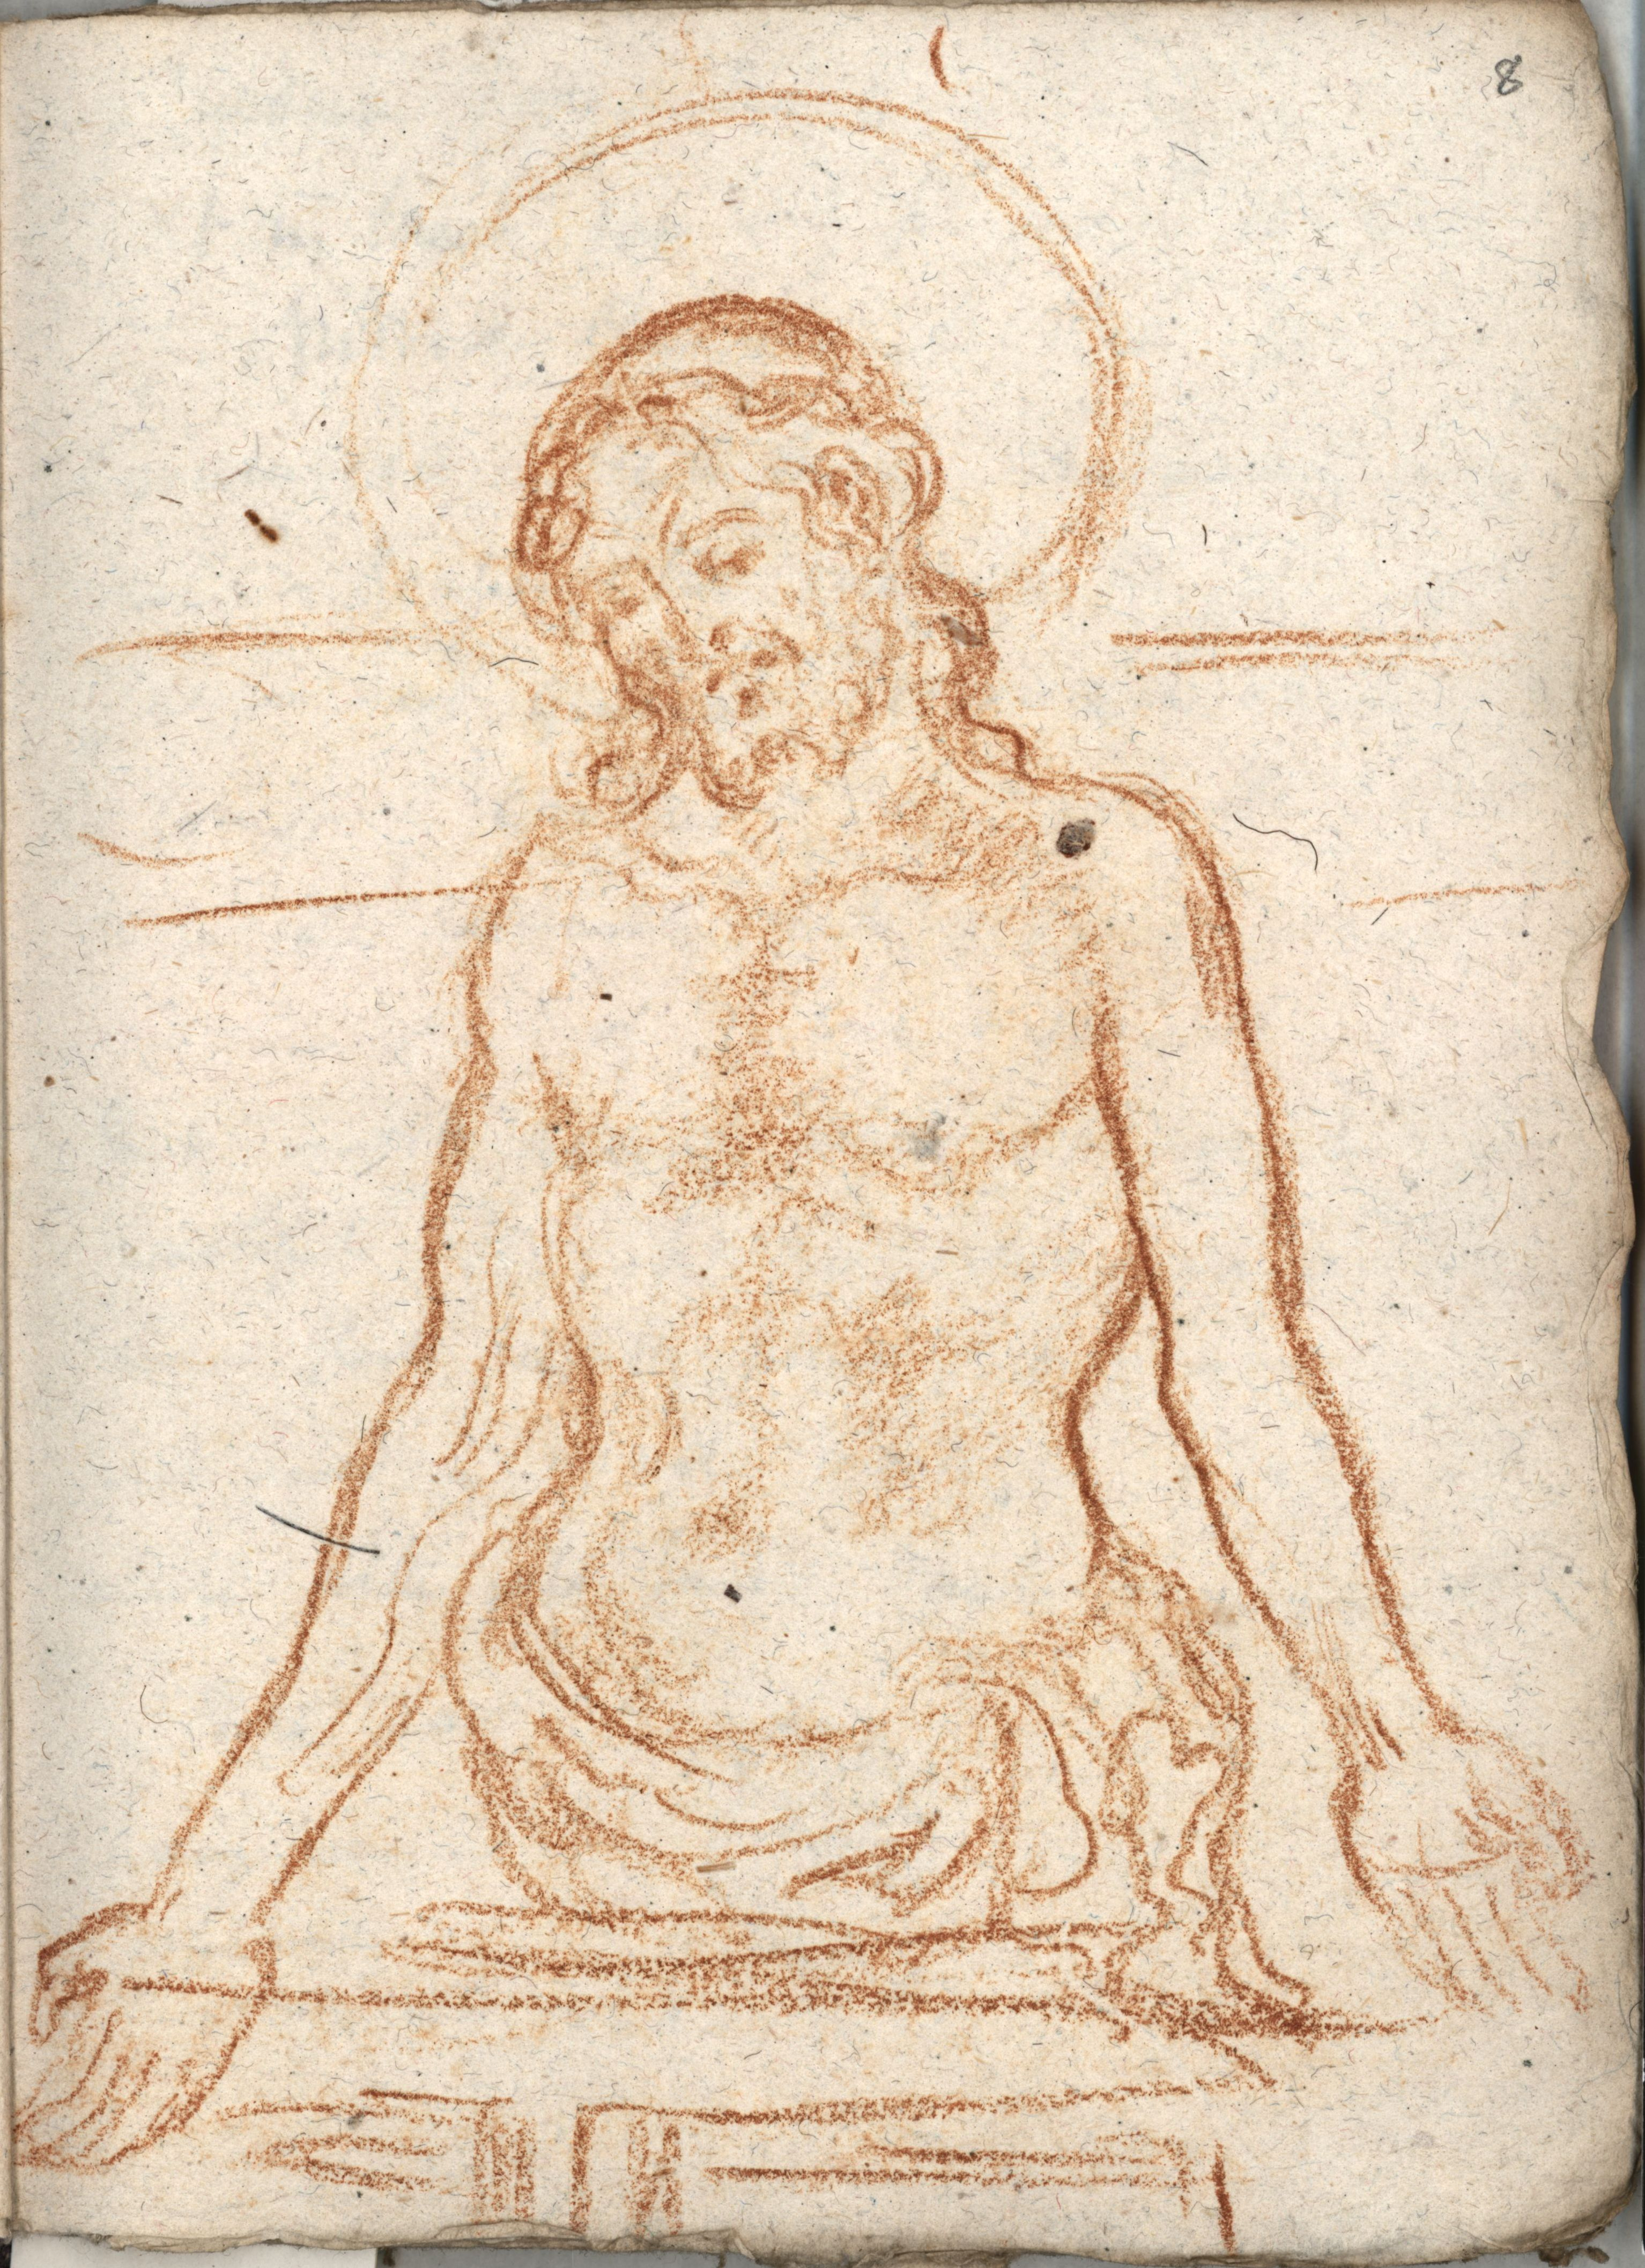 Drawing by Roger Fry, 1902, after Giambono's 'Man of Sorrows'. [REF/4/1/24]